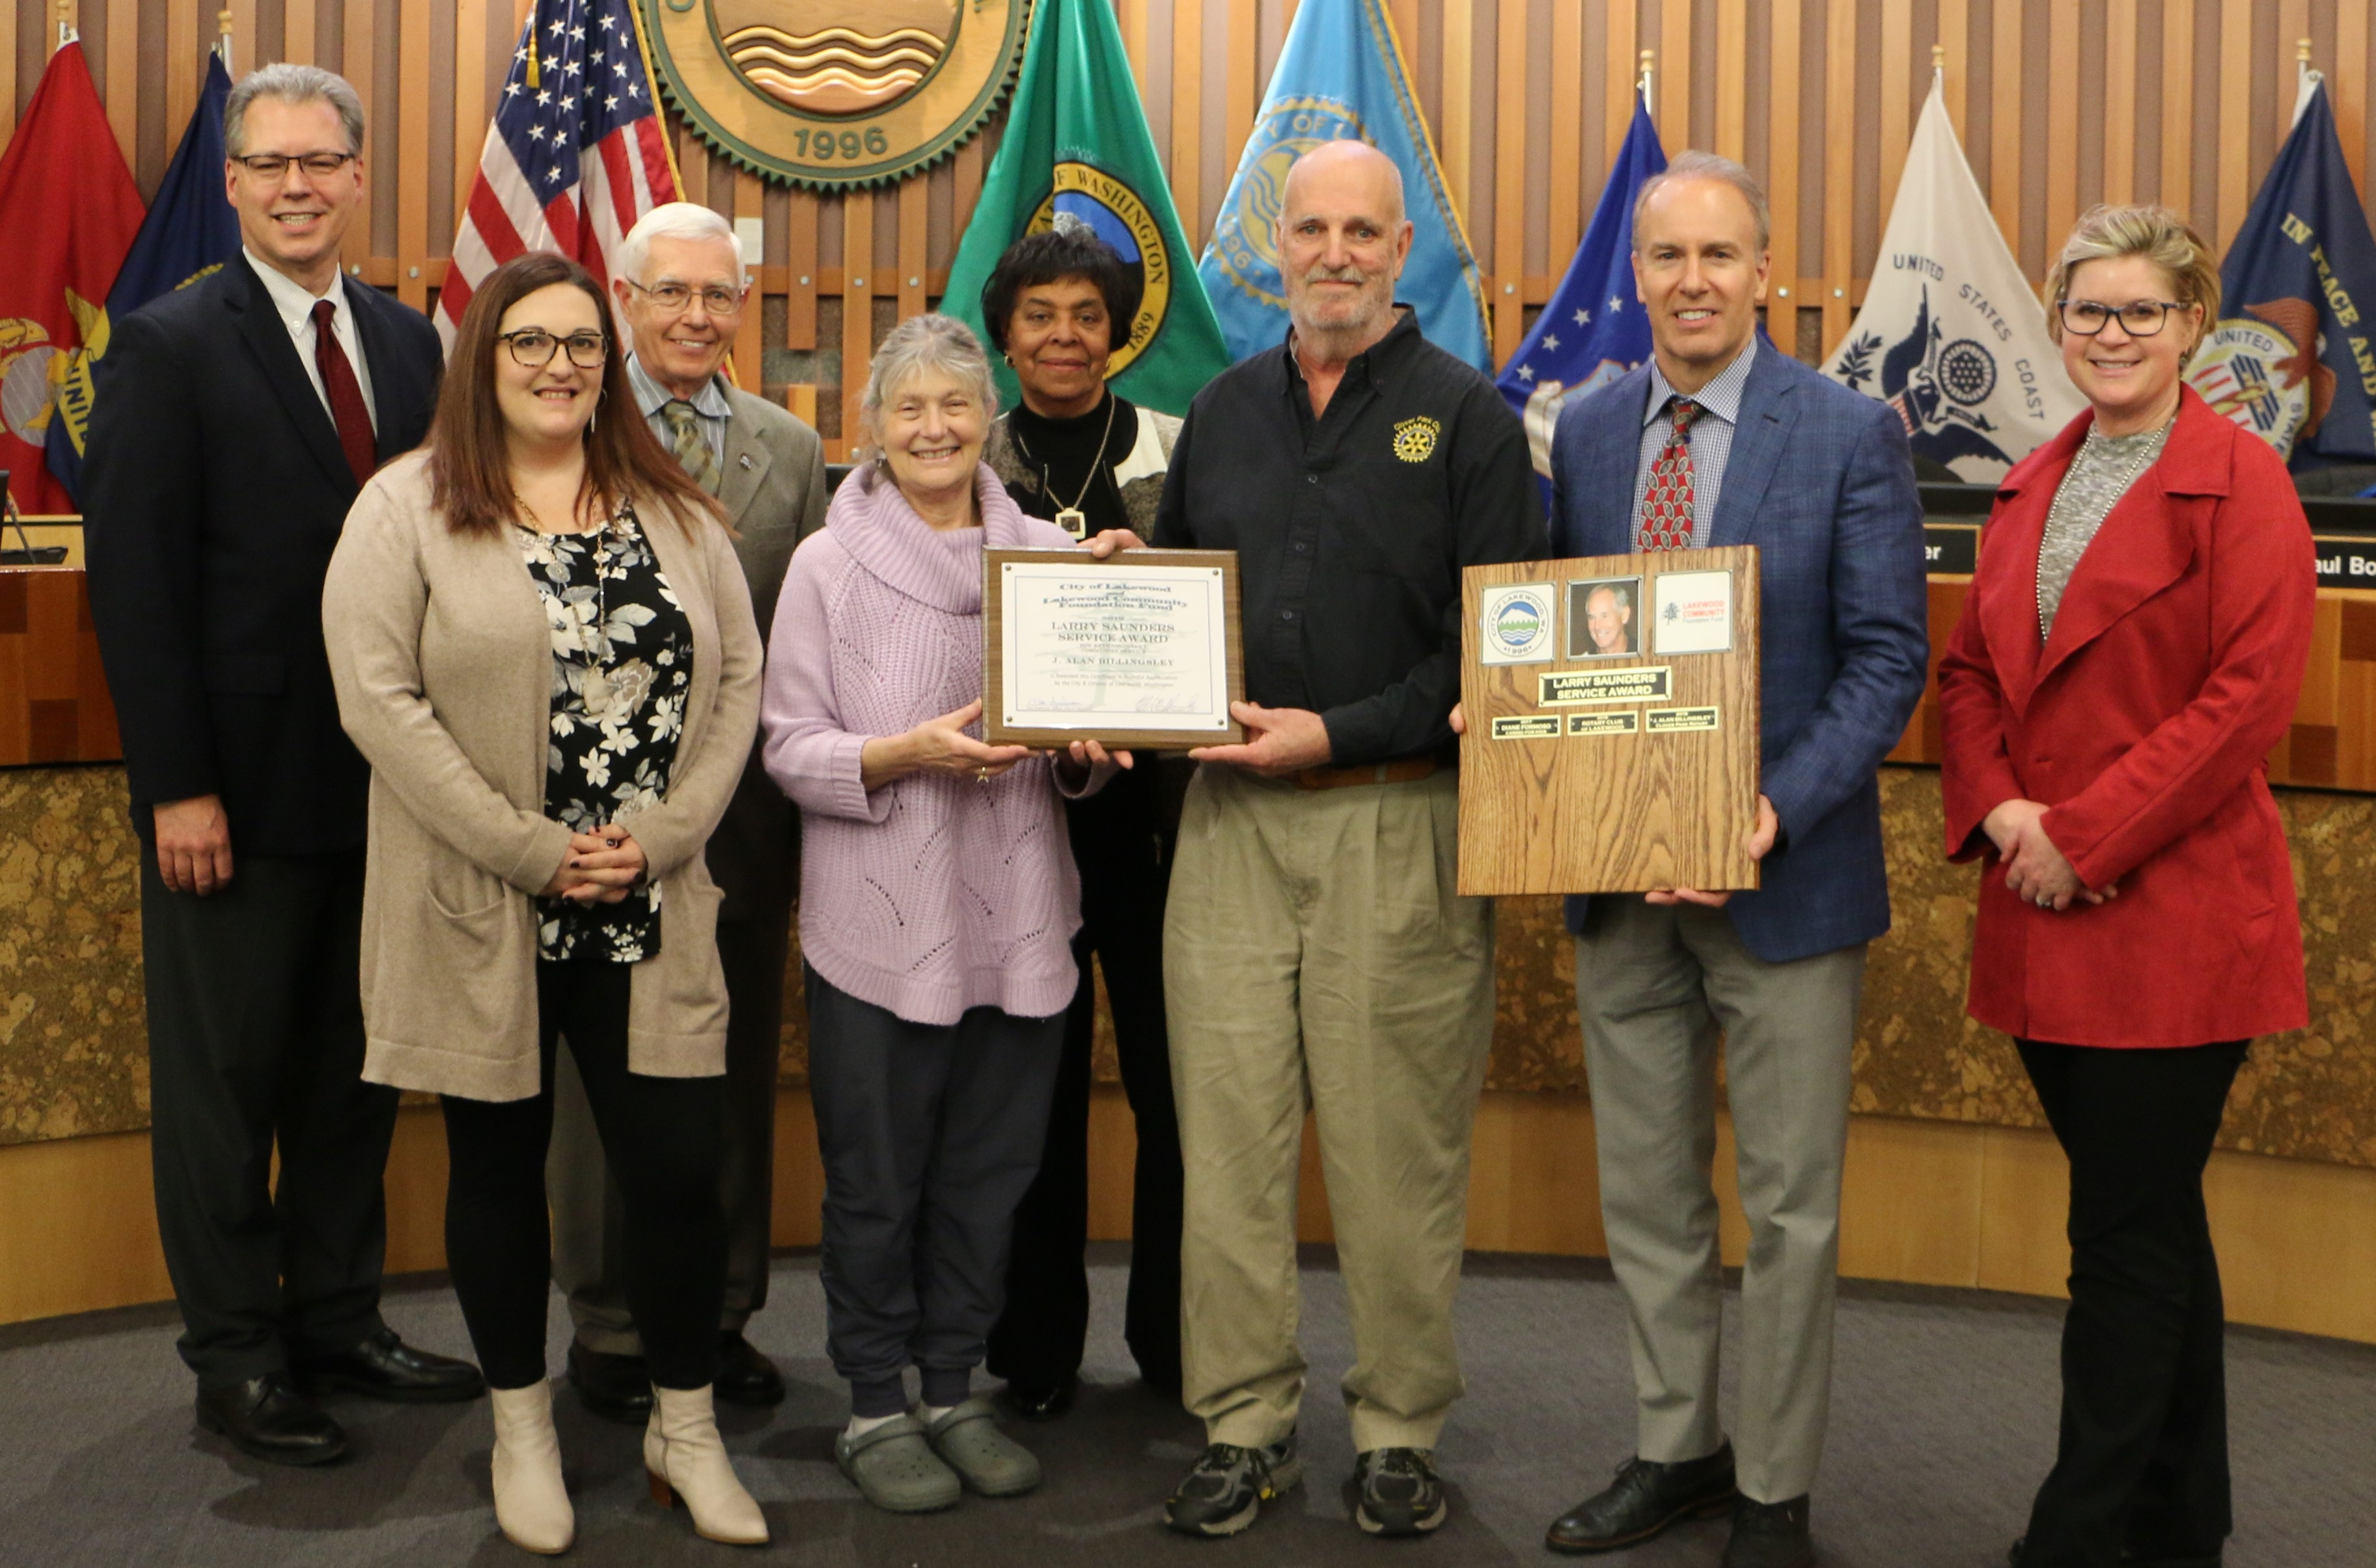 Sally Saunders and the City Council present the award to Alan Billingsley